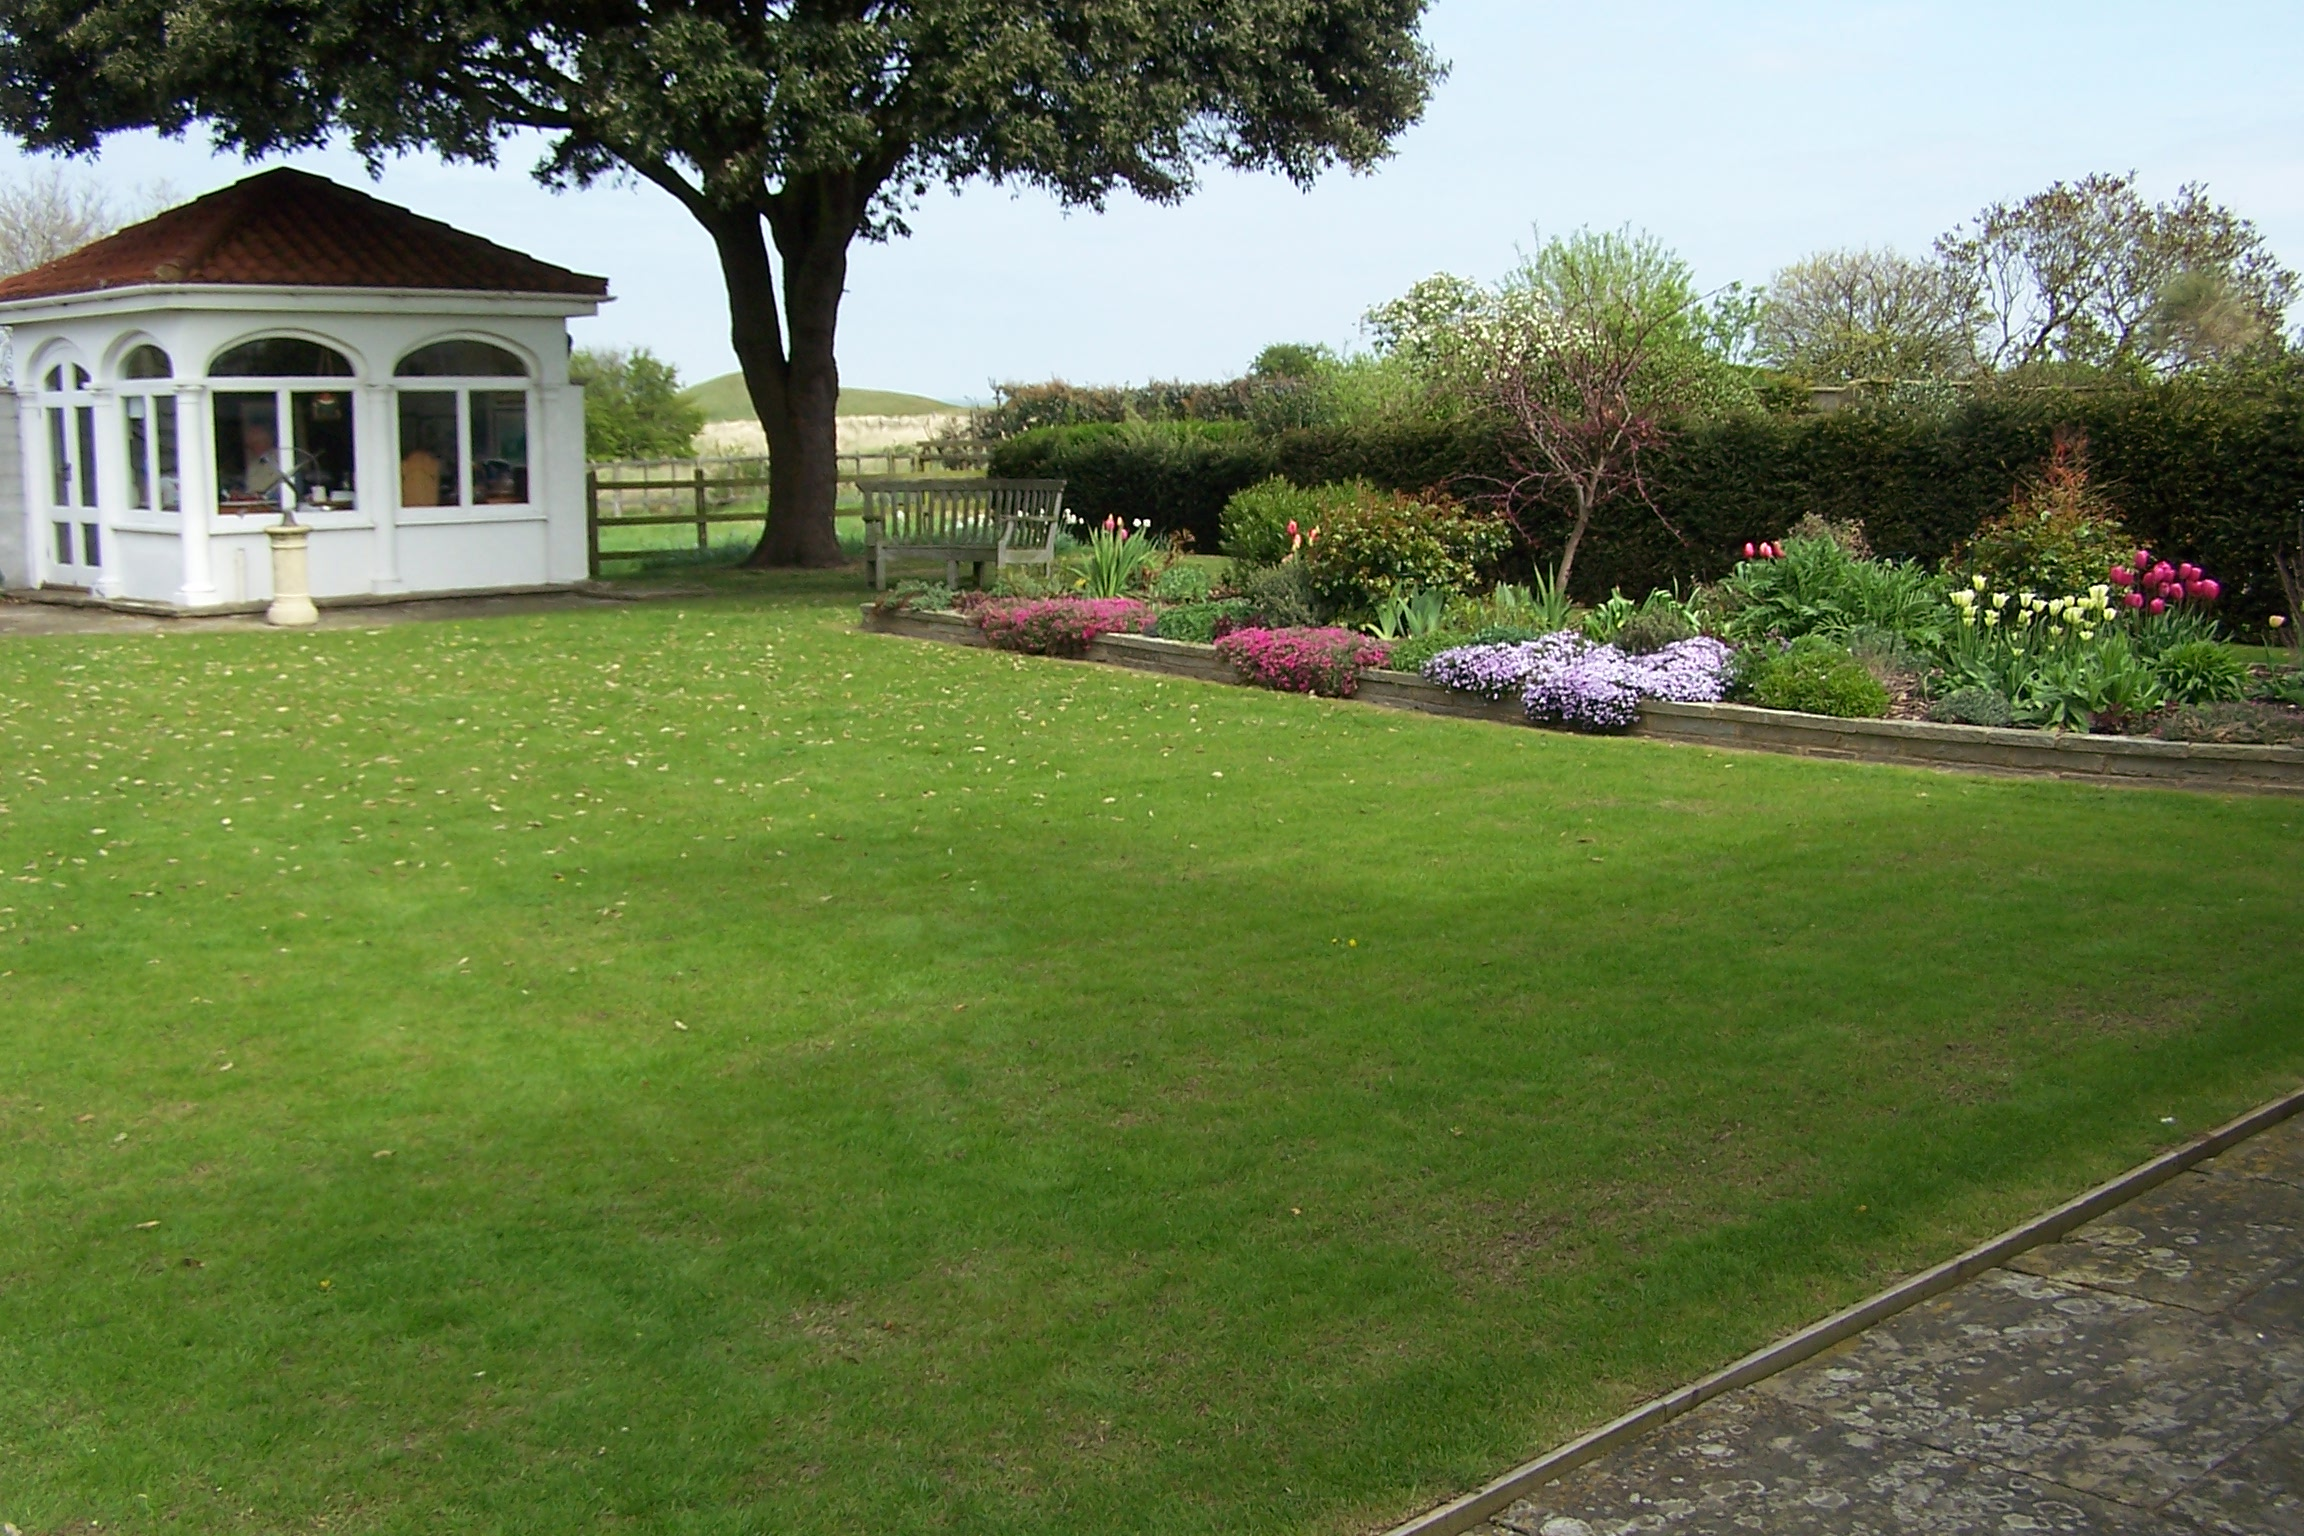 Lawn Irrigation Systems by ECP Group, Ipswich, Suffolk